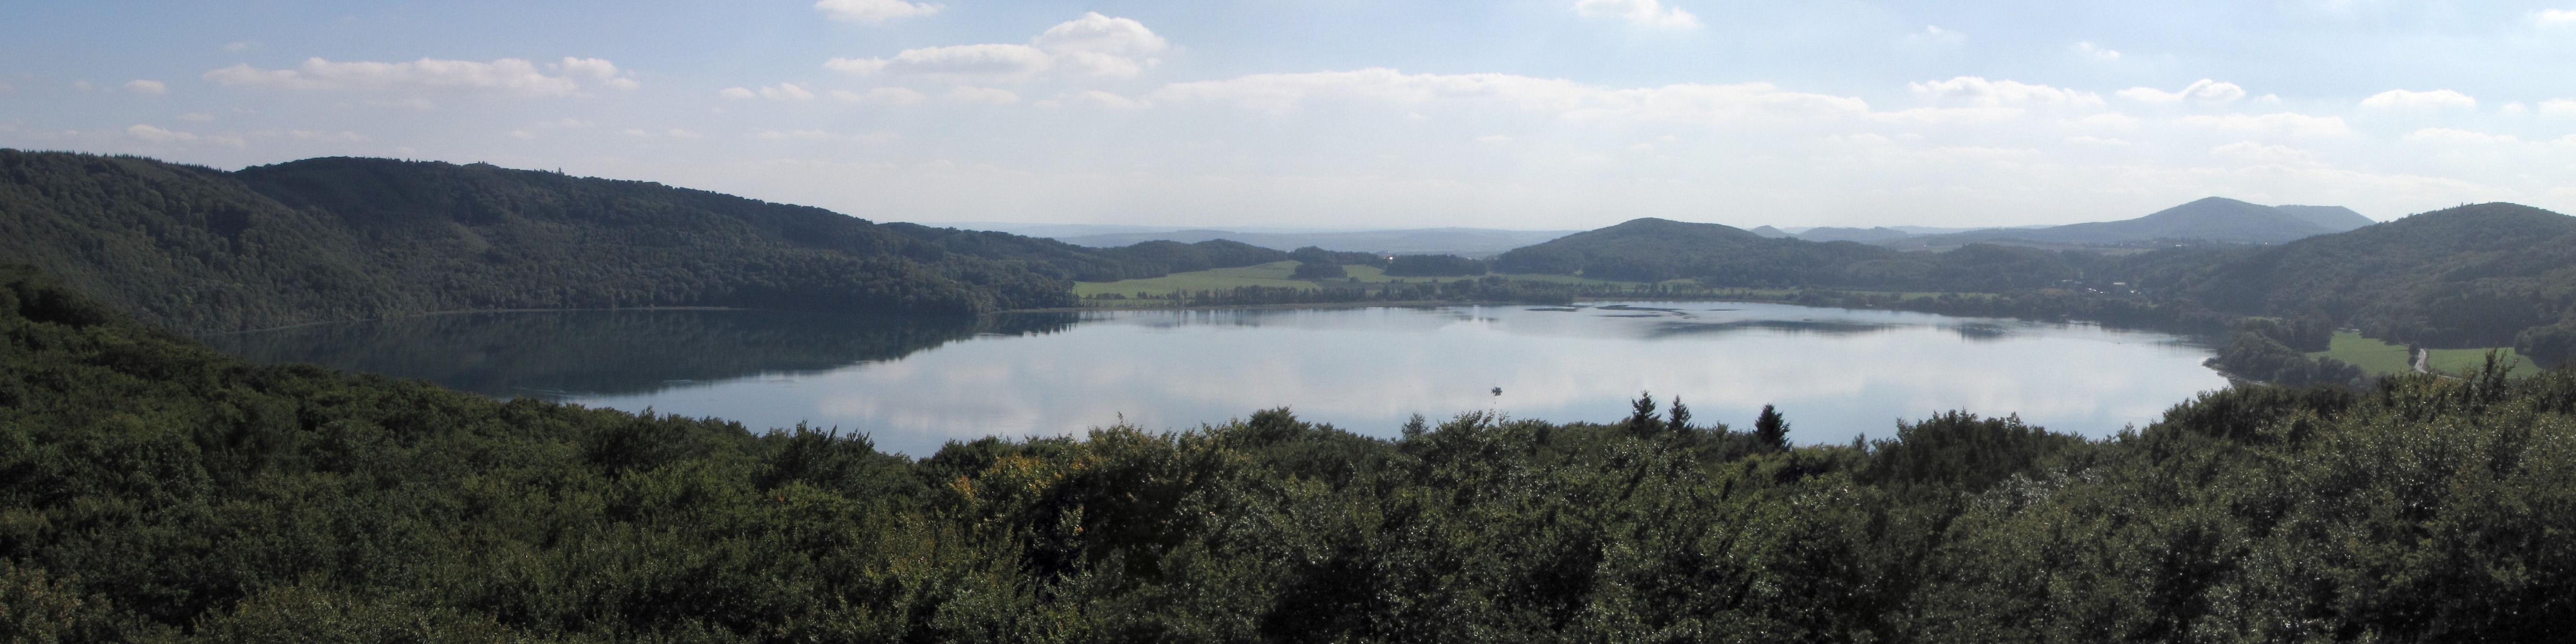 https://upload.wikimedia.org/wikipedia/commons/4/4f/Panorama_Laacher_See_2010.jpg